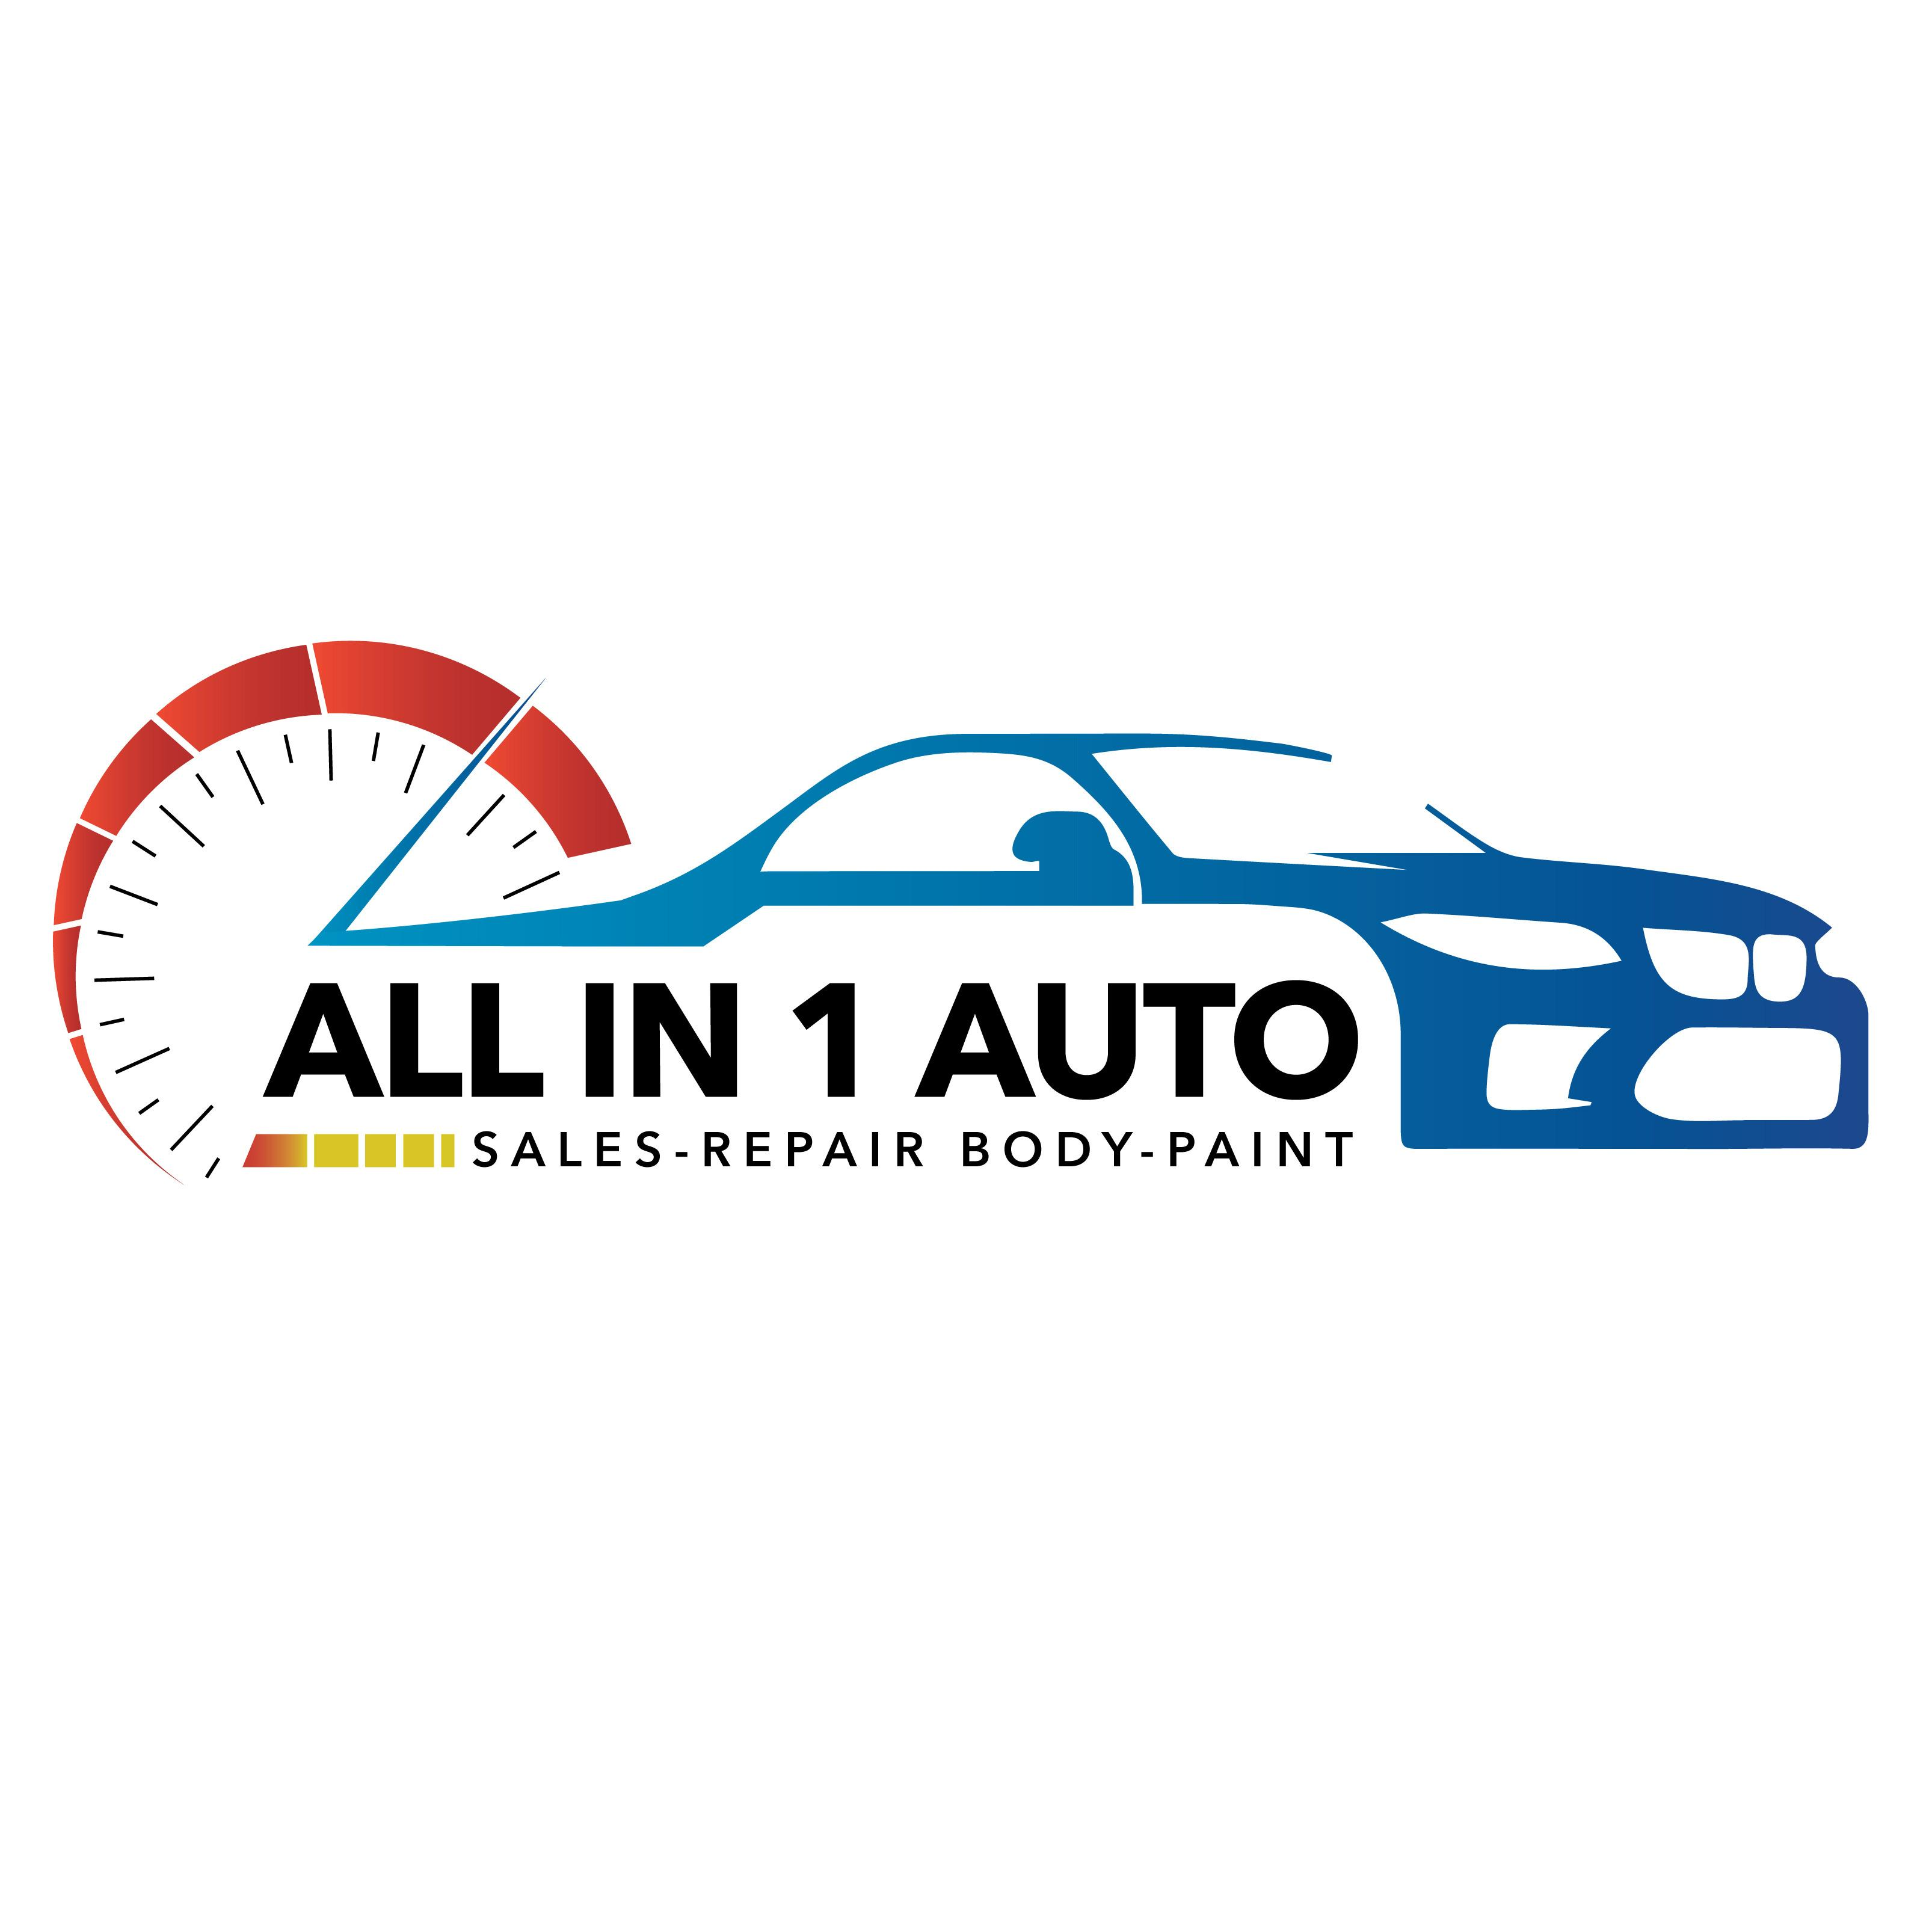 Vegas Best Auto Collision & Repair